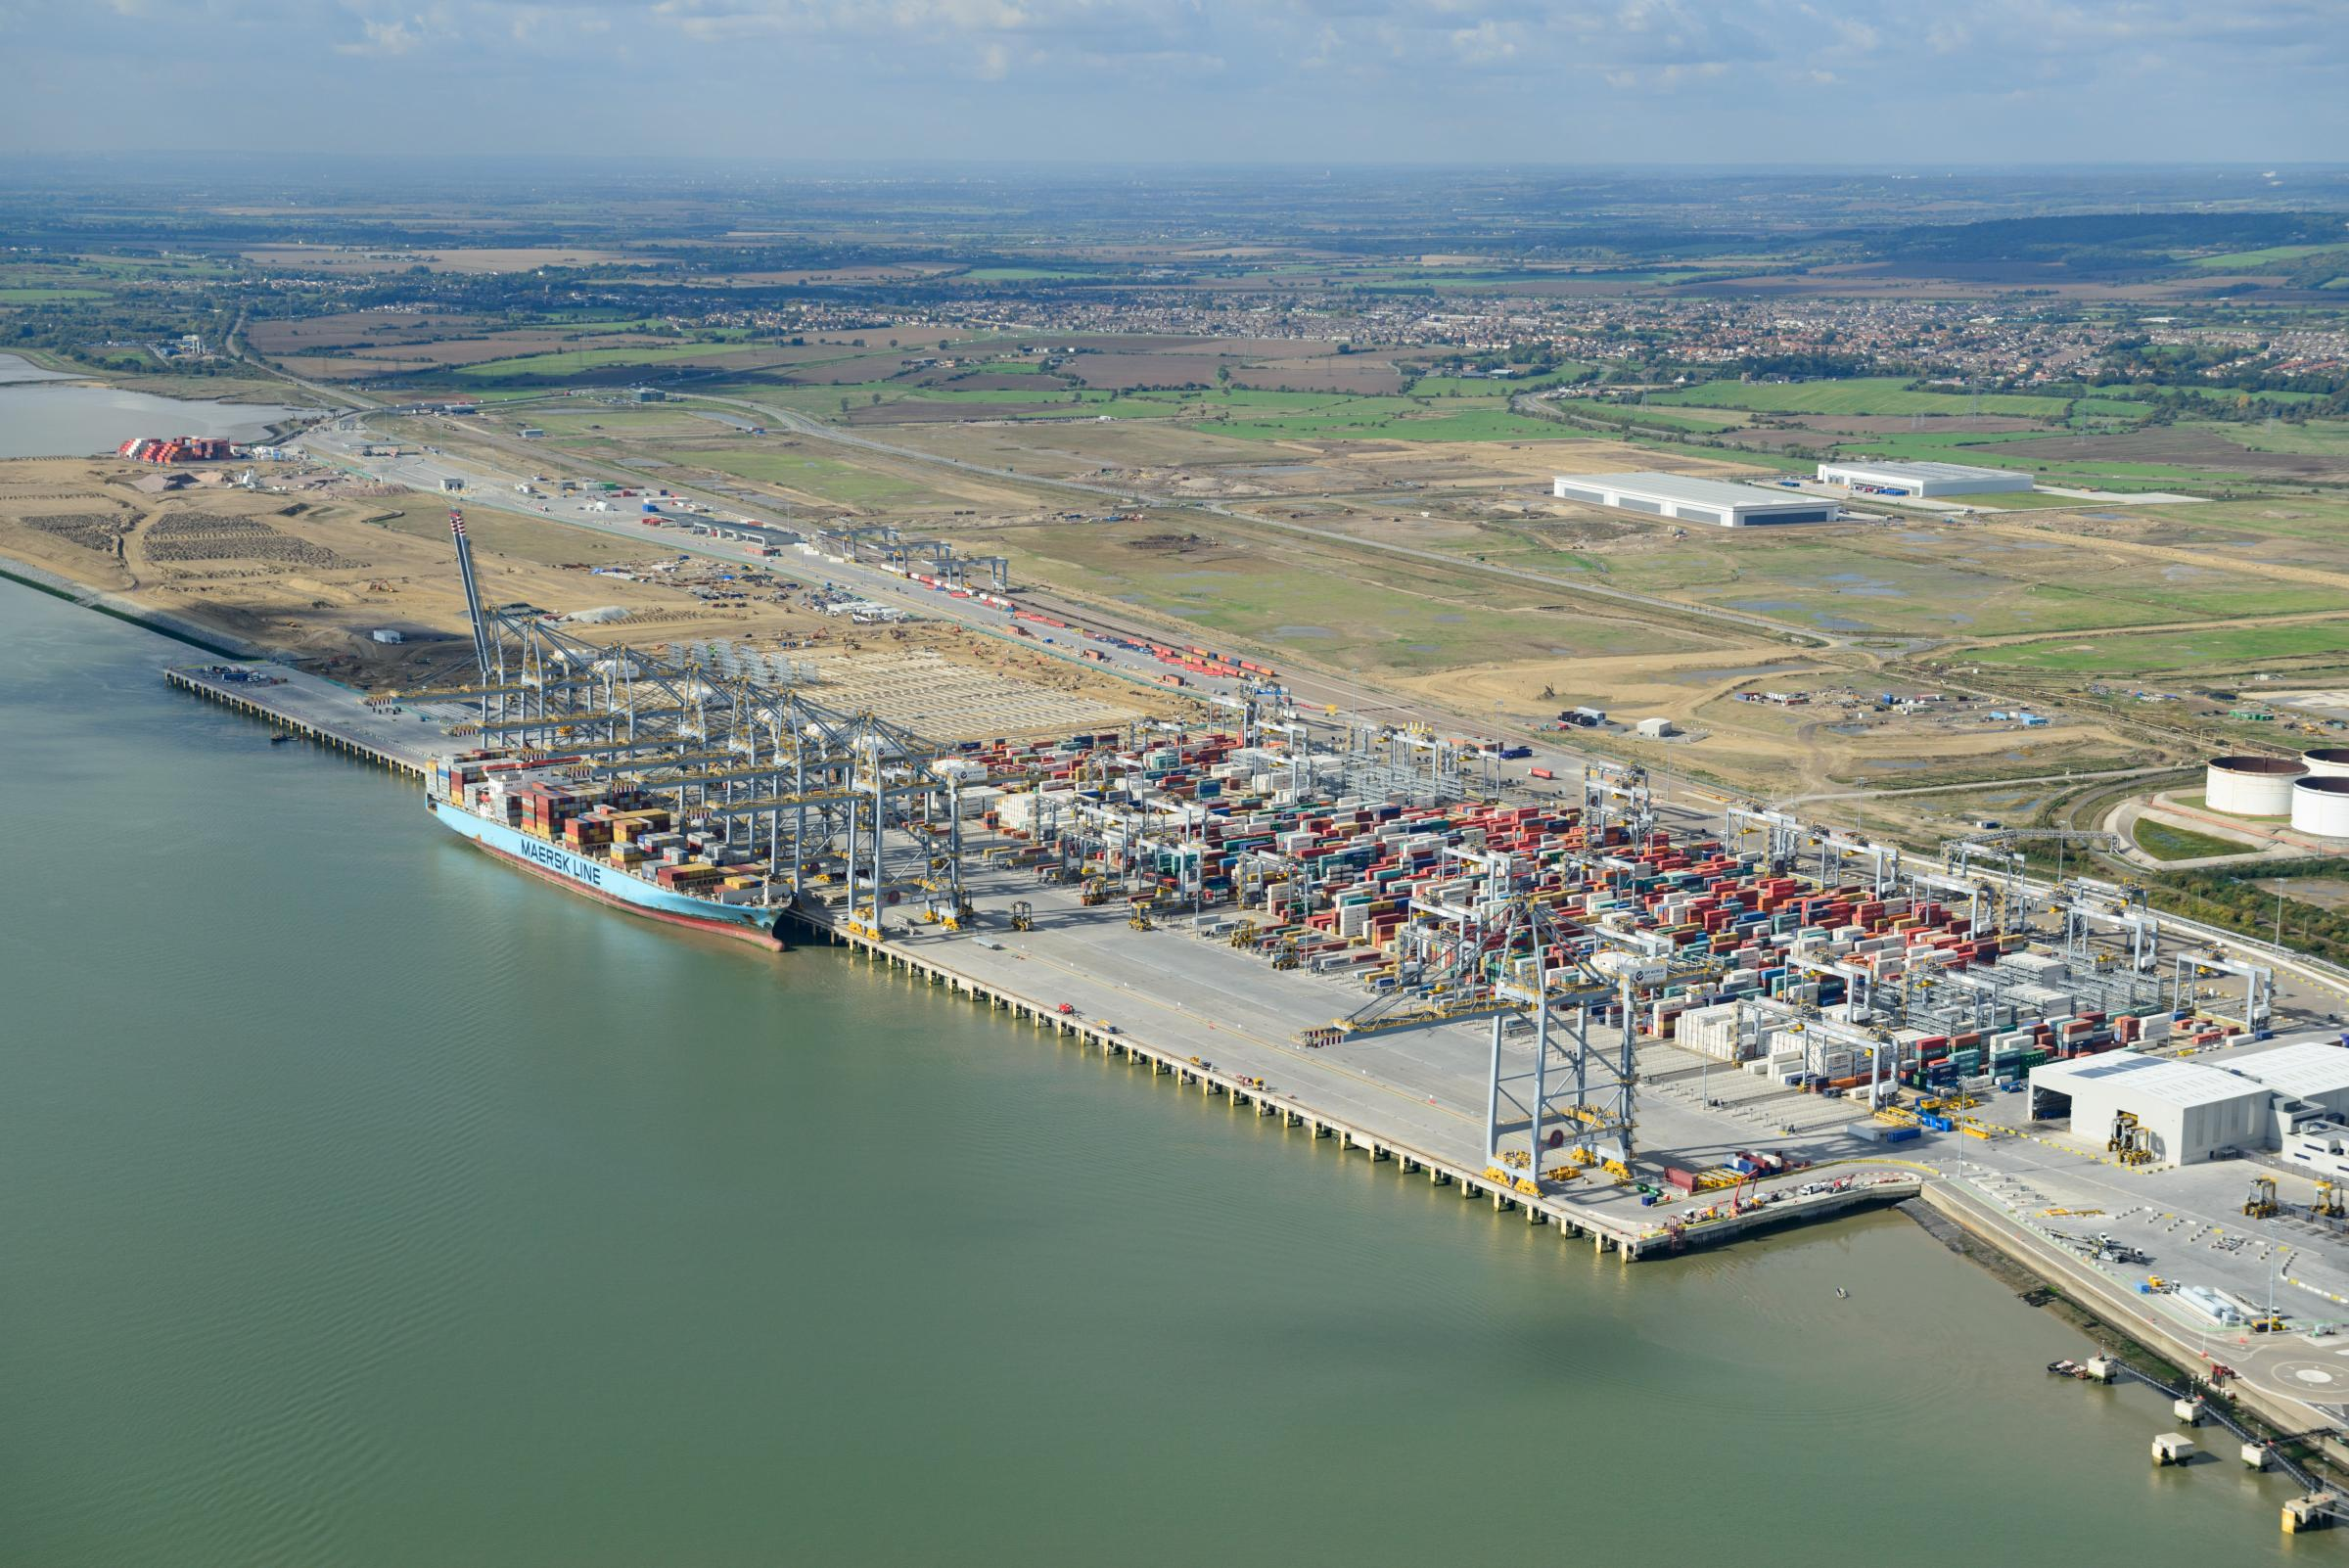 DP World London Gateway pic by Nick Strugnell